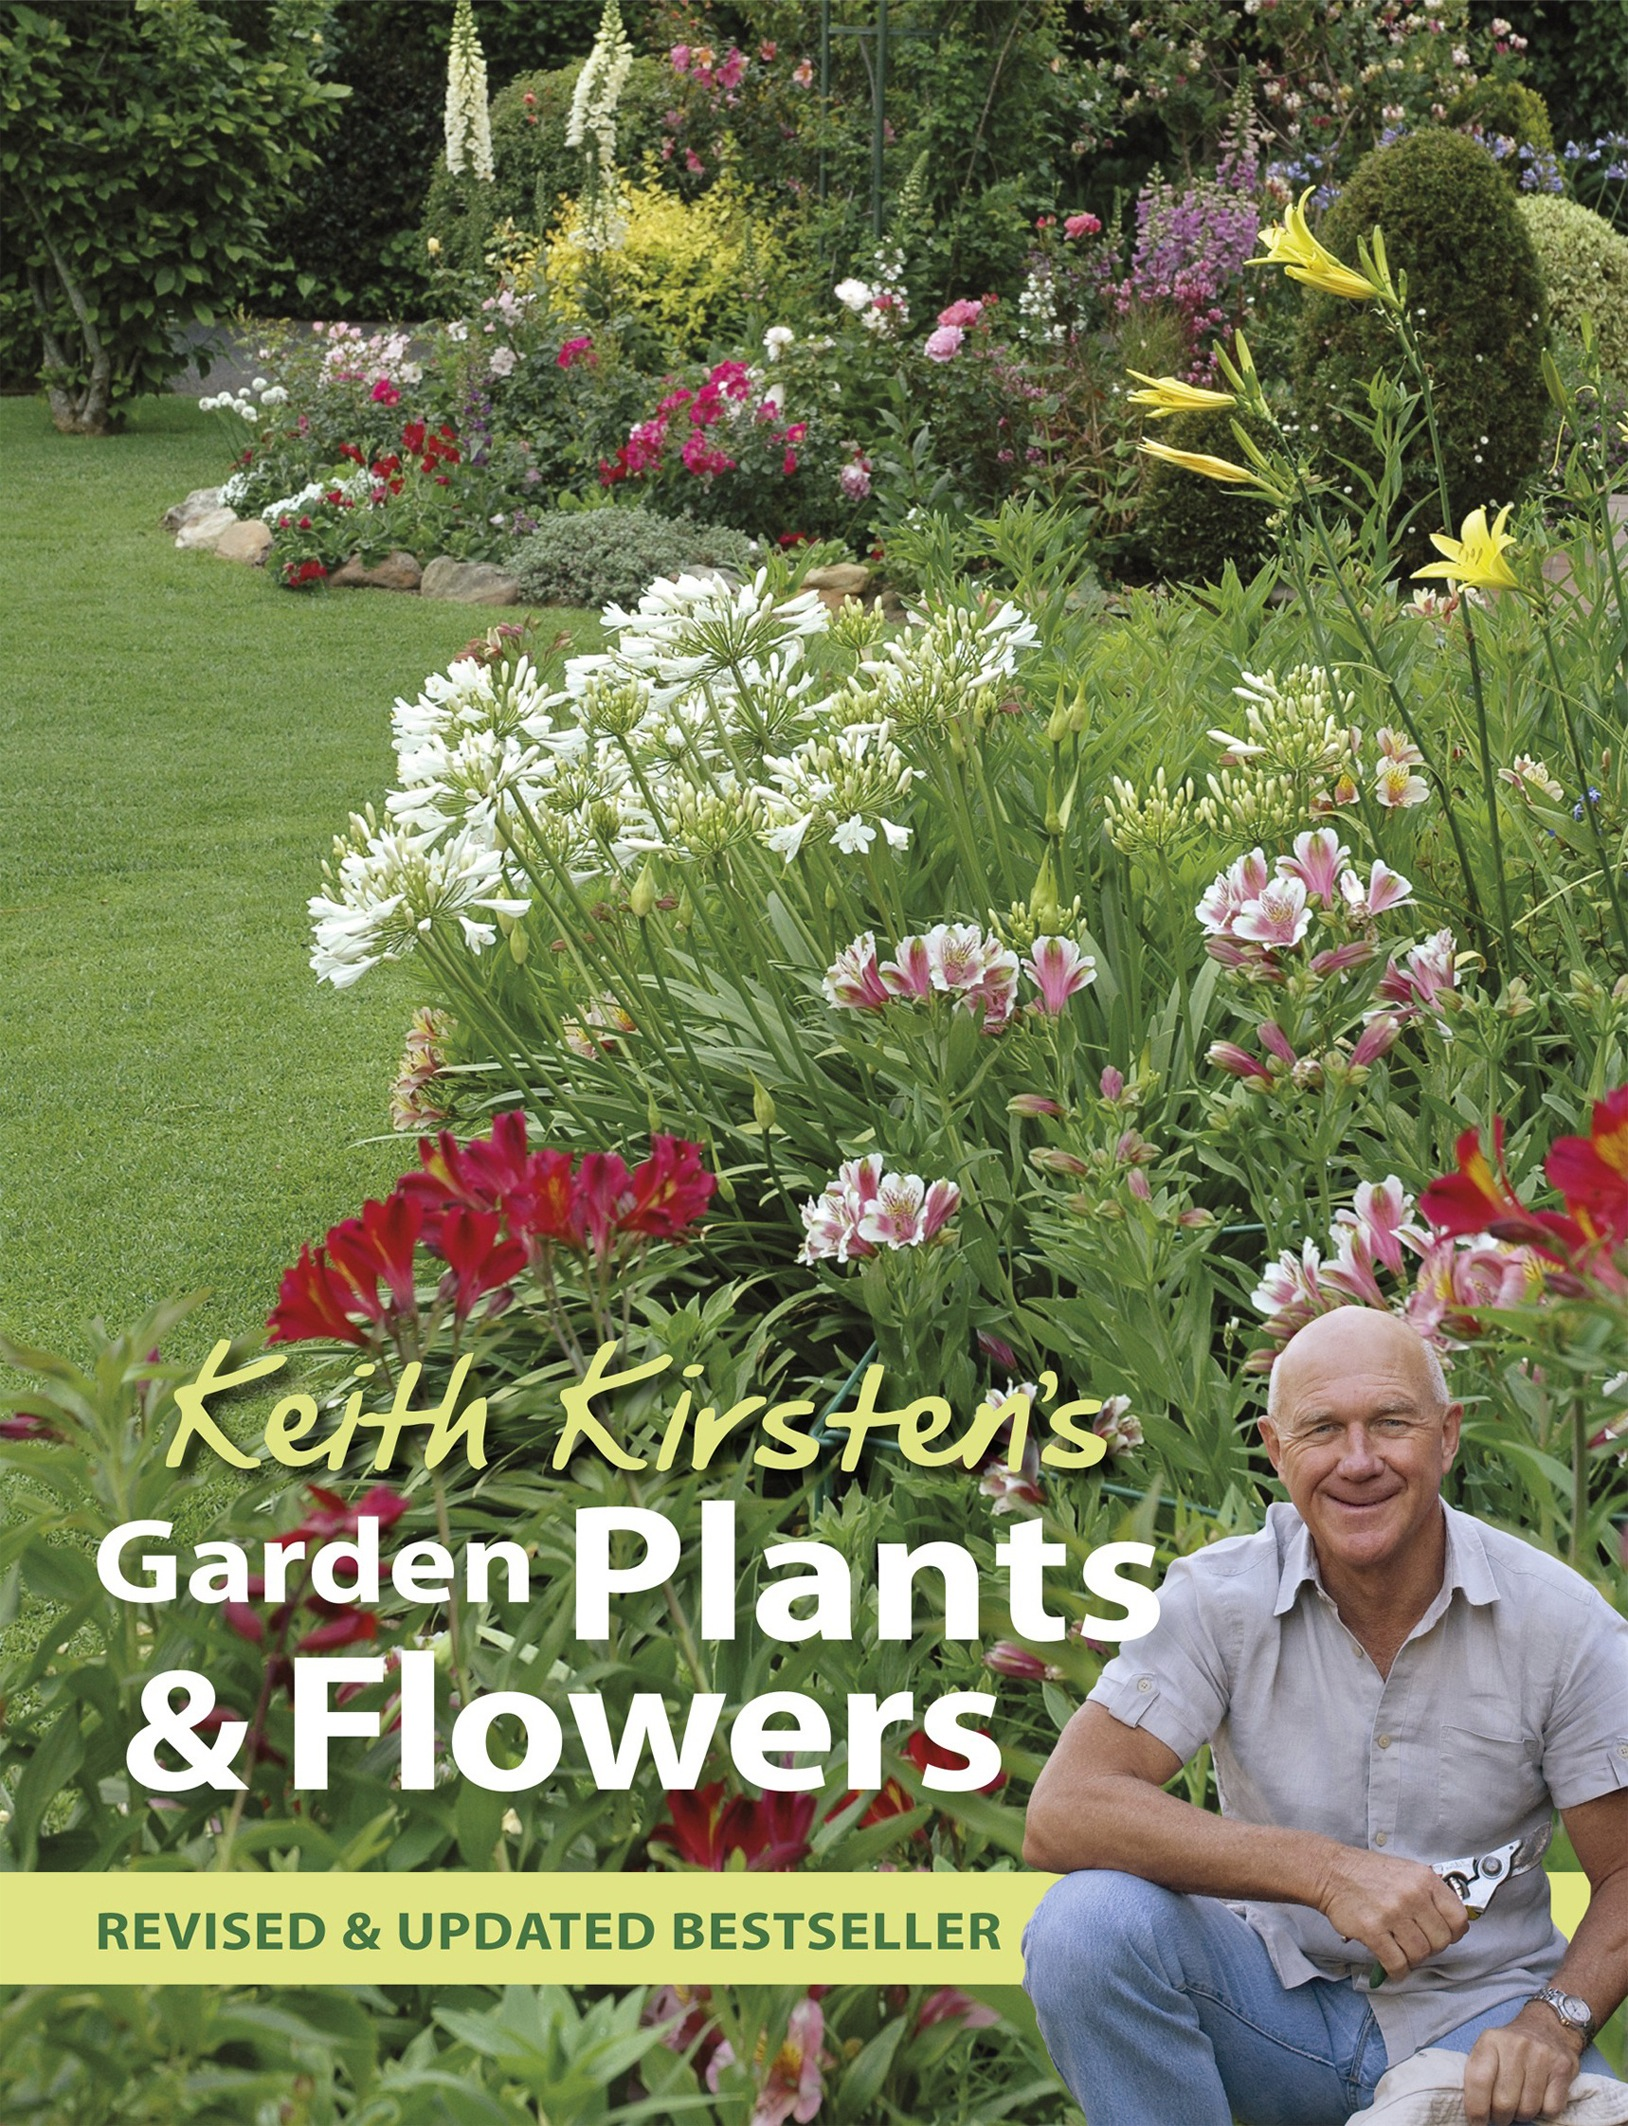 Picture of Keith Kirsten's garden plants & flowers